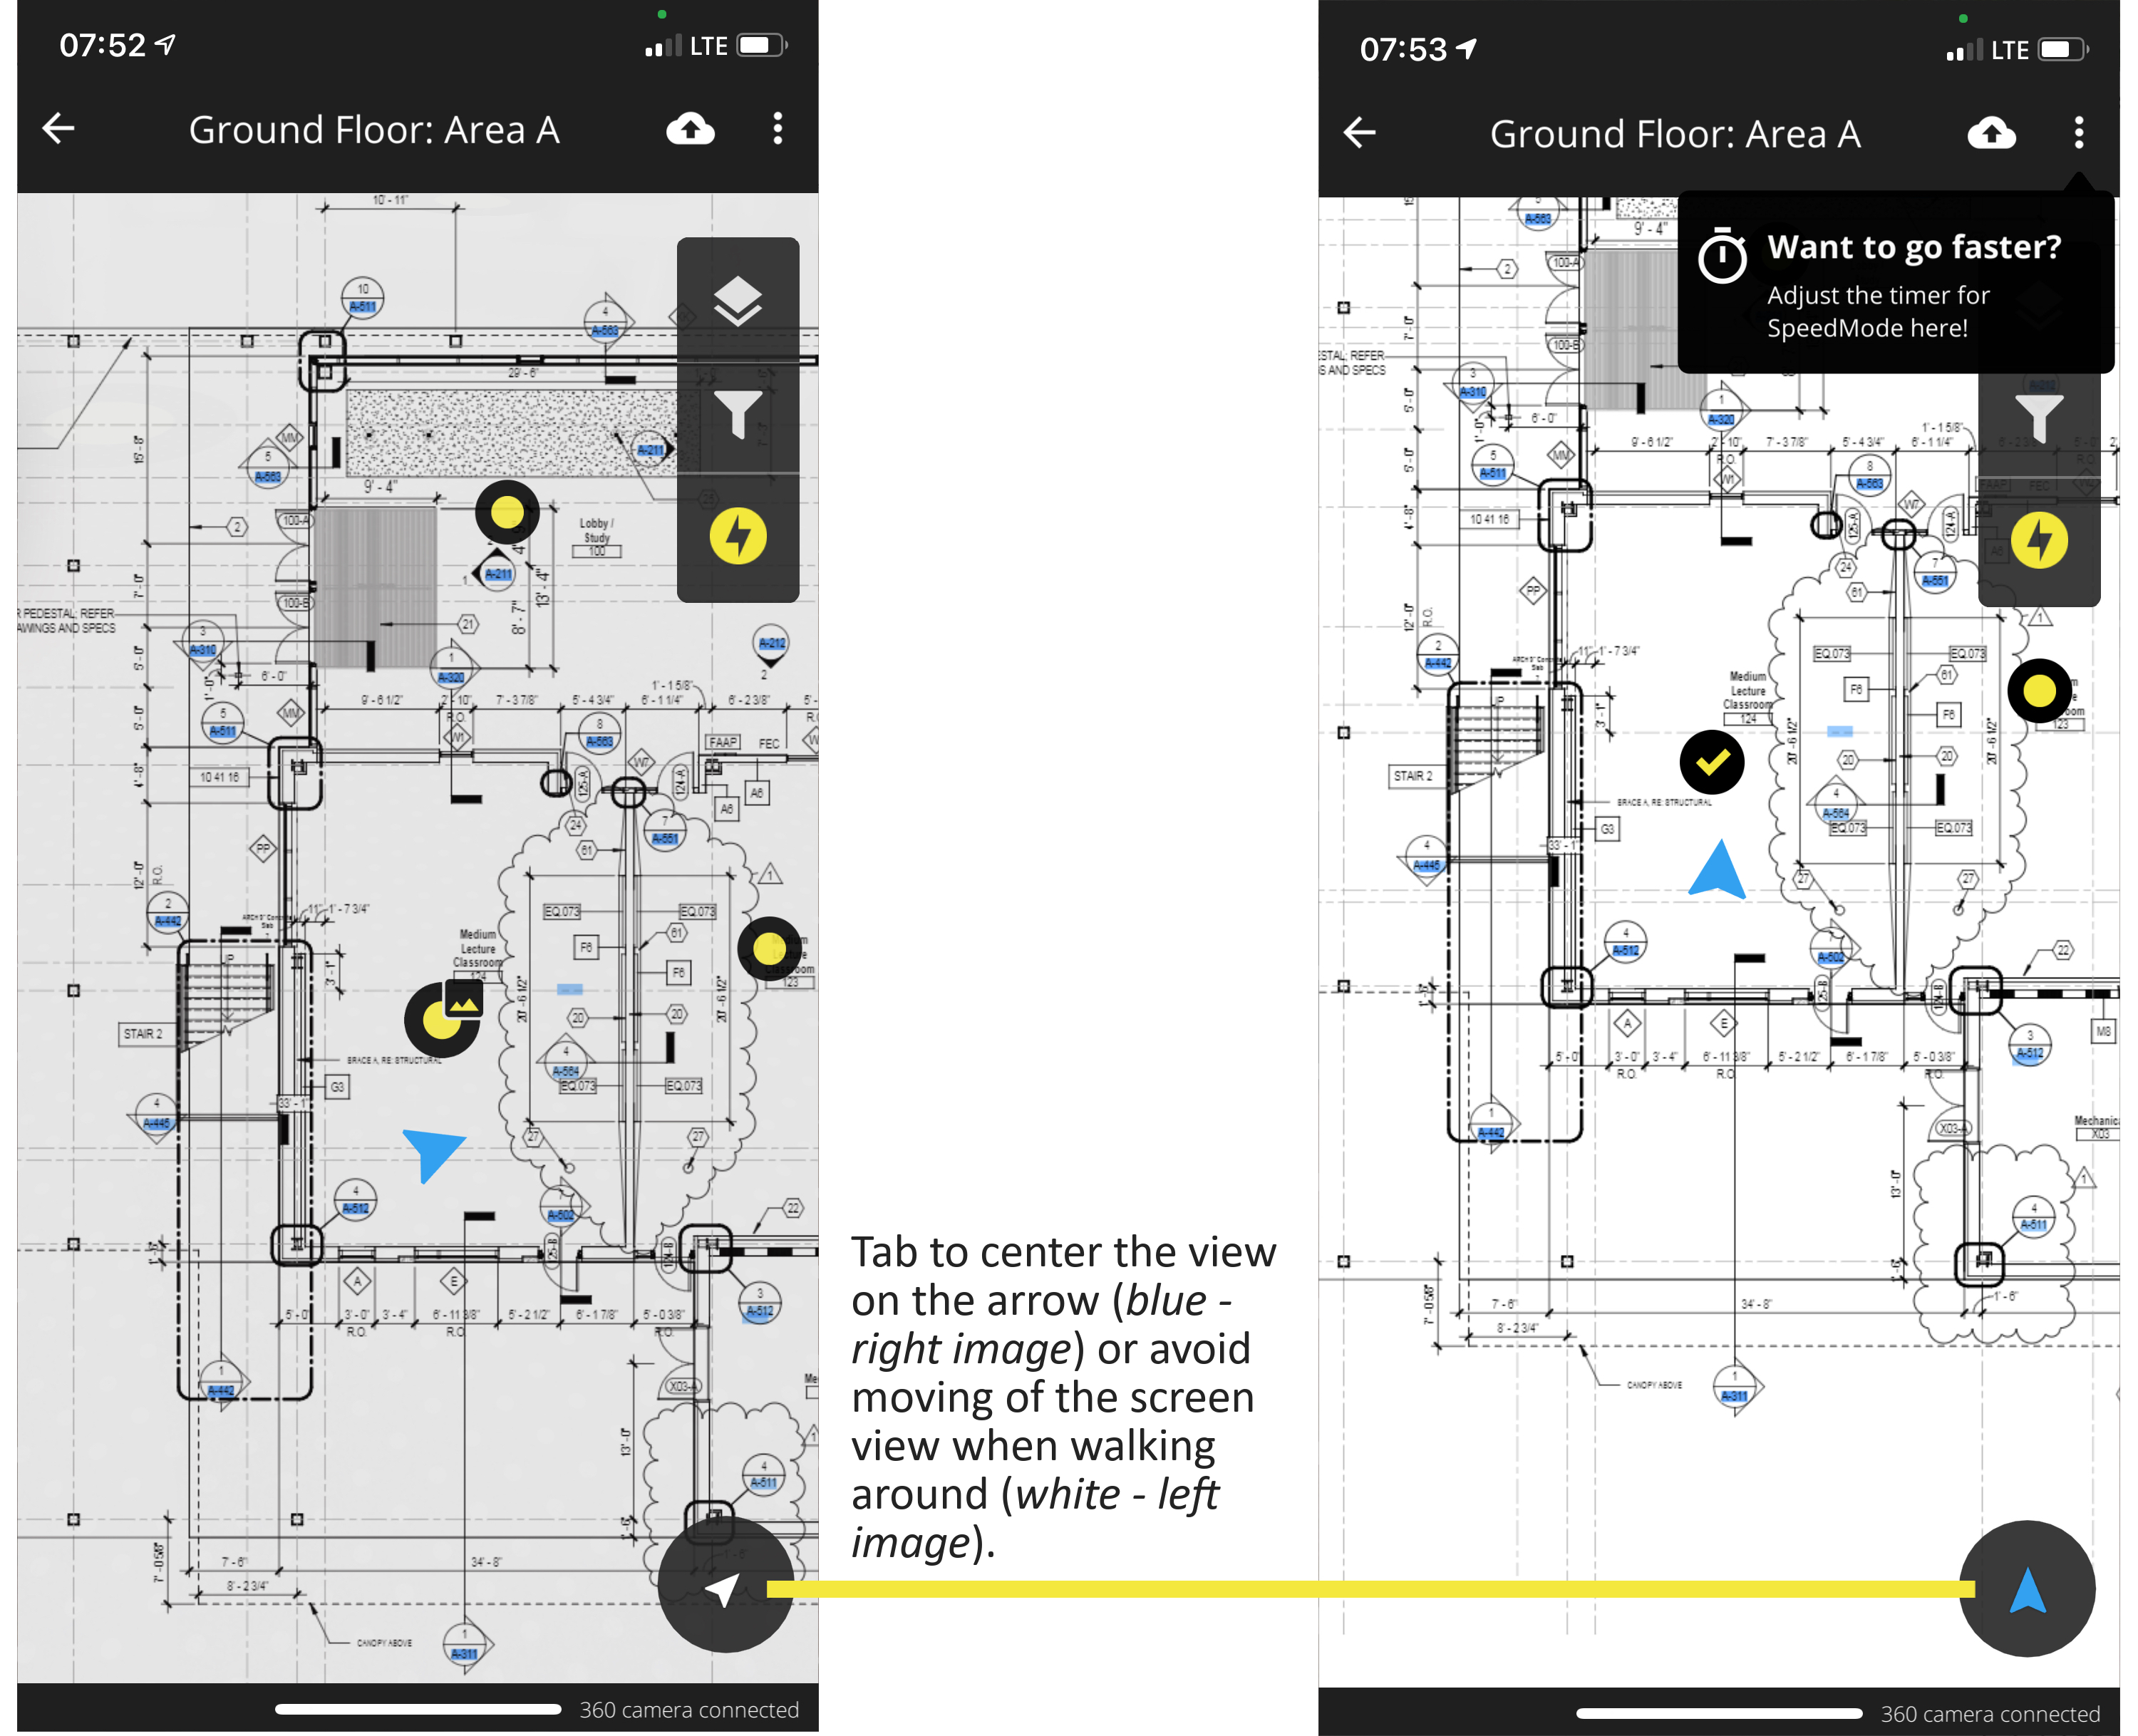 How to center the position arrow to the screen view in the HoloBuilder JobWalk app with SpeedMode